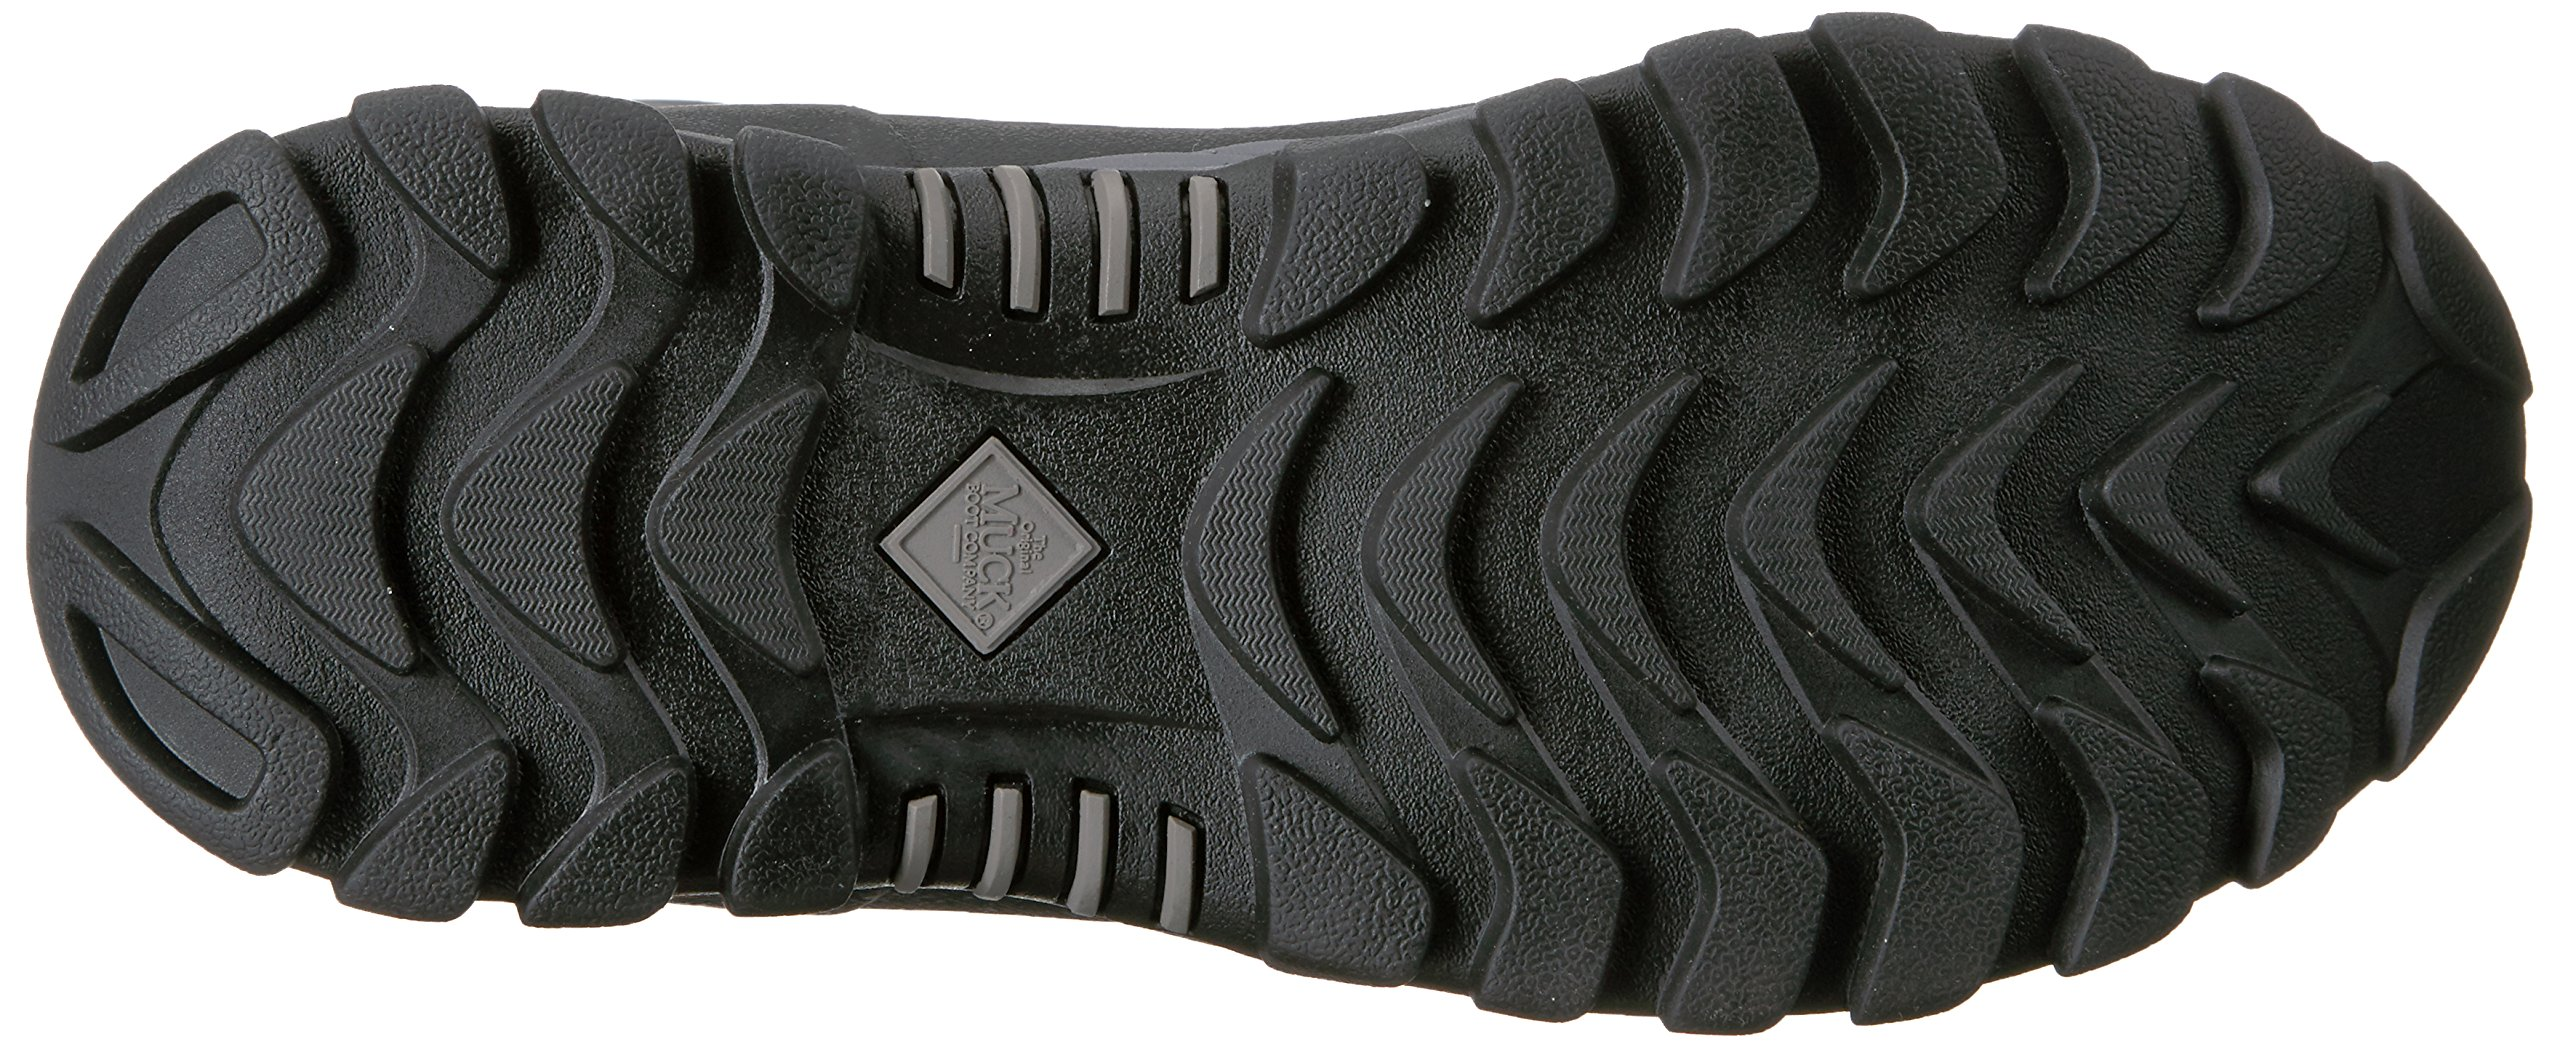 Muck Boot Women's Arctic Sport II Tall Snow Boot, Black, 7 US/7 M US by Muck Boot (Image #3)